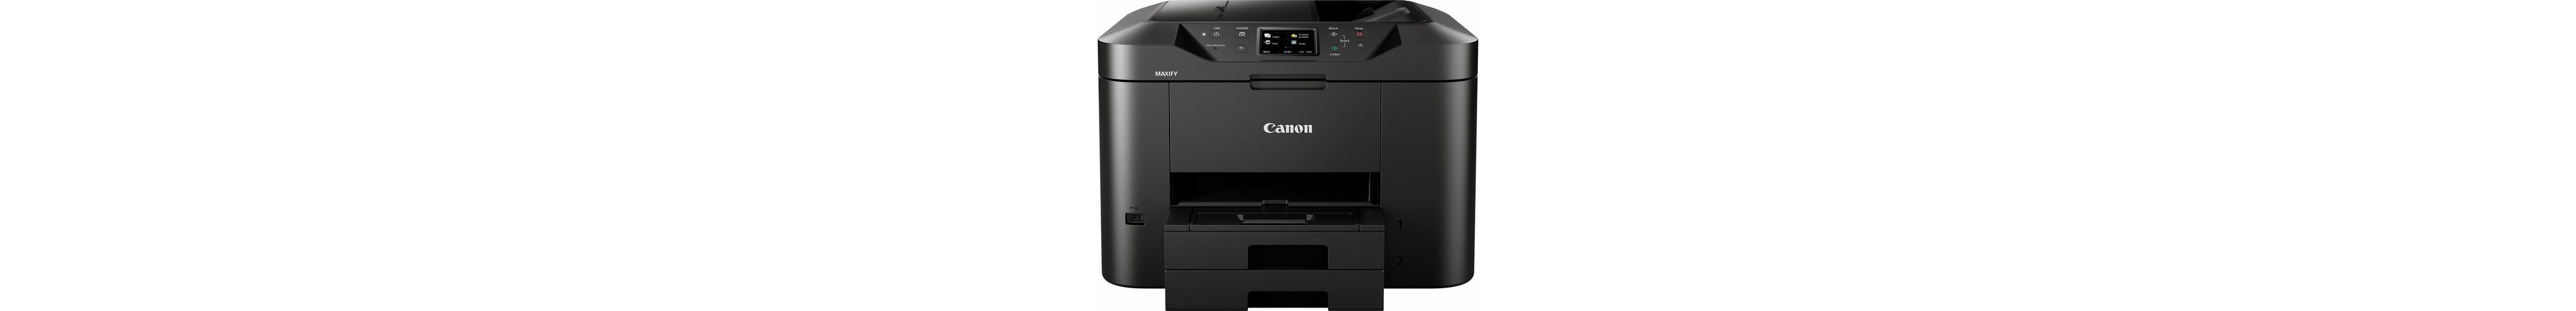 Canon MAXIFY MB2750 Multifunktionsdrucker